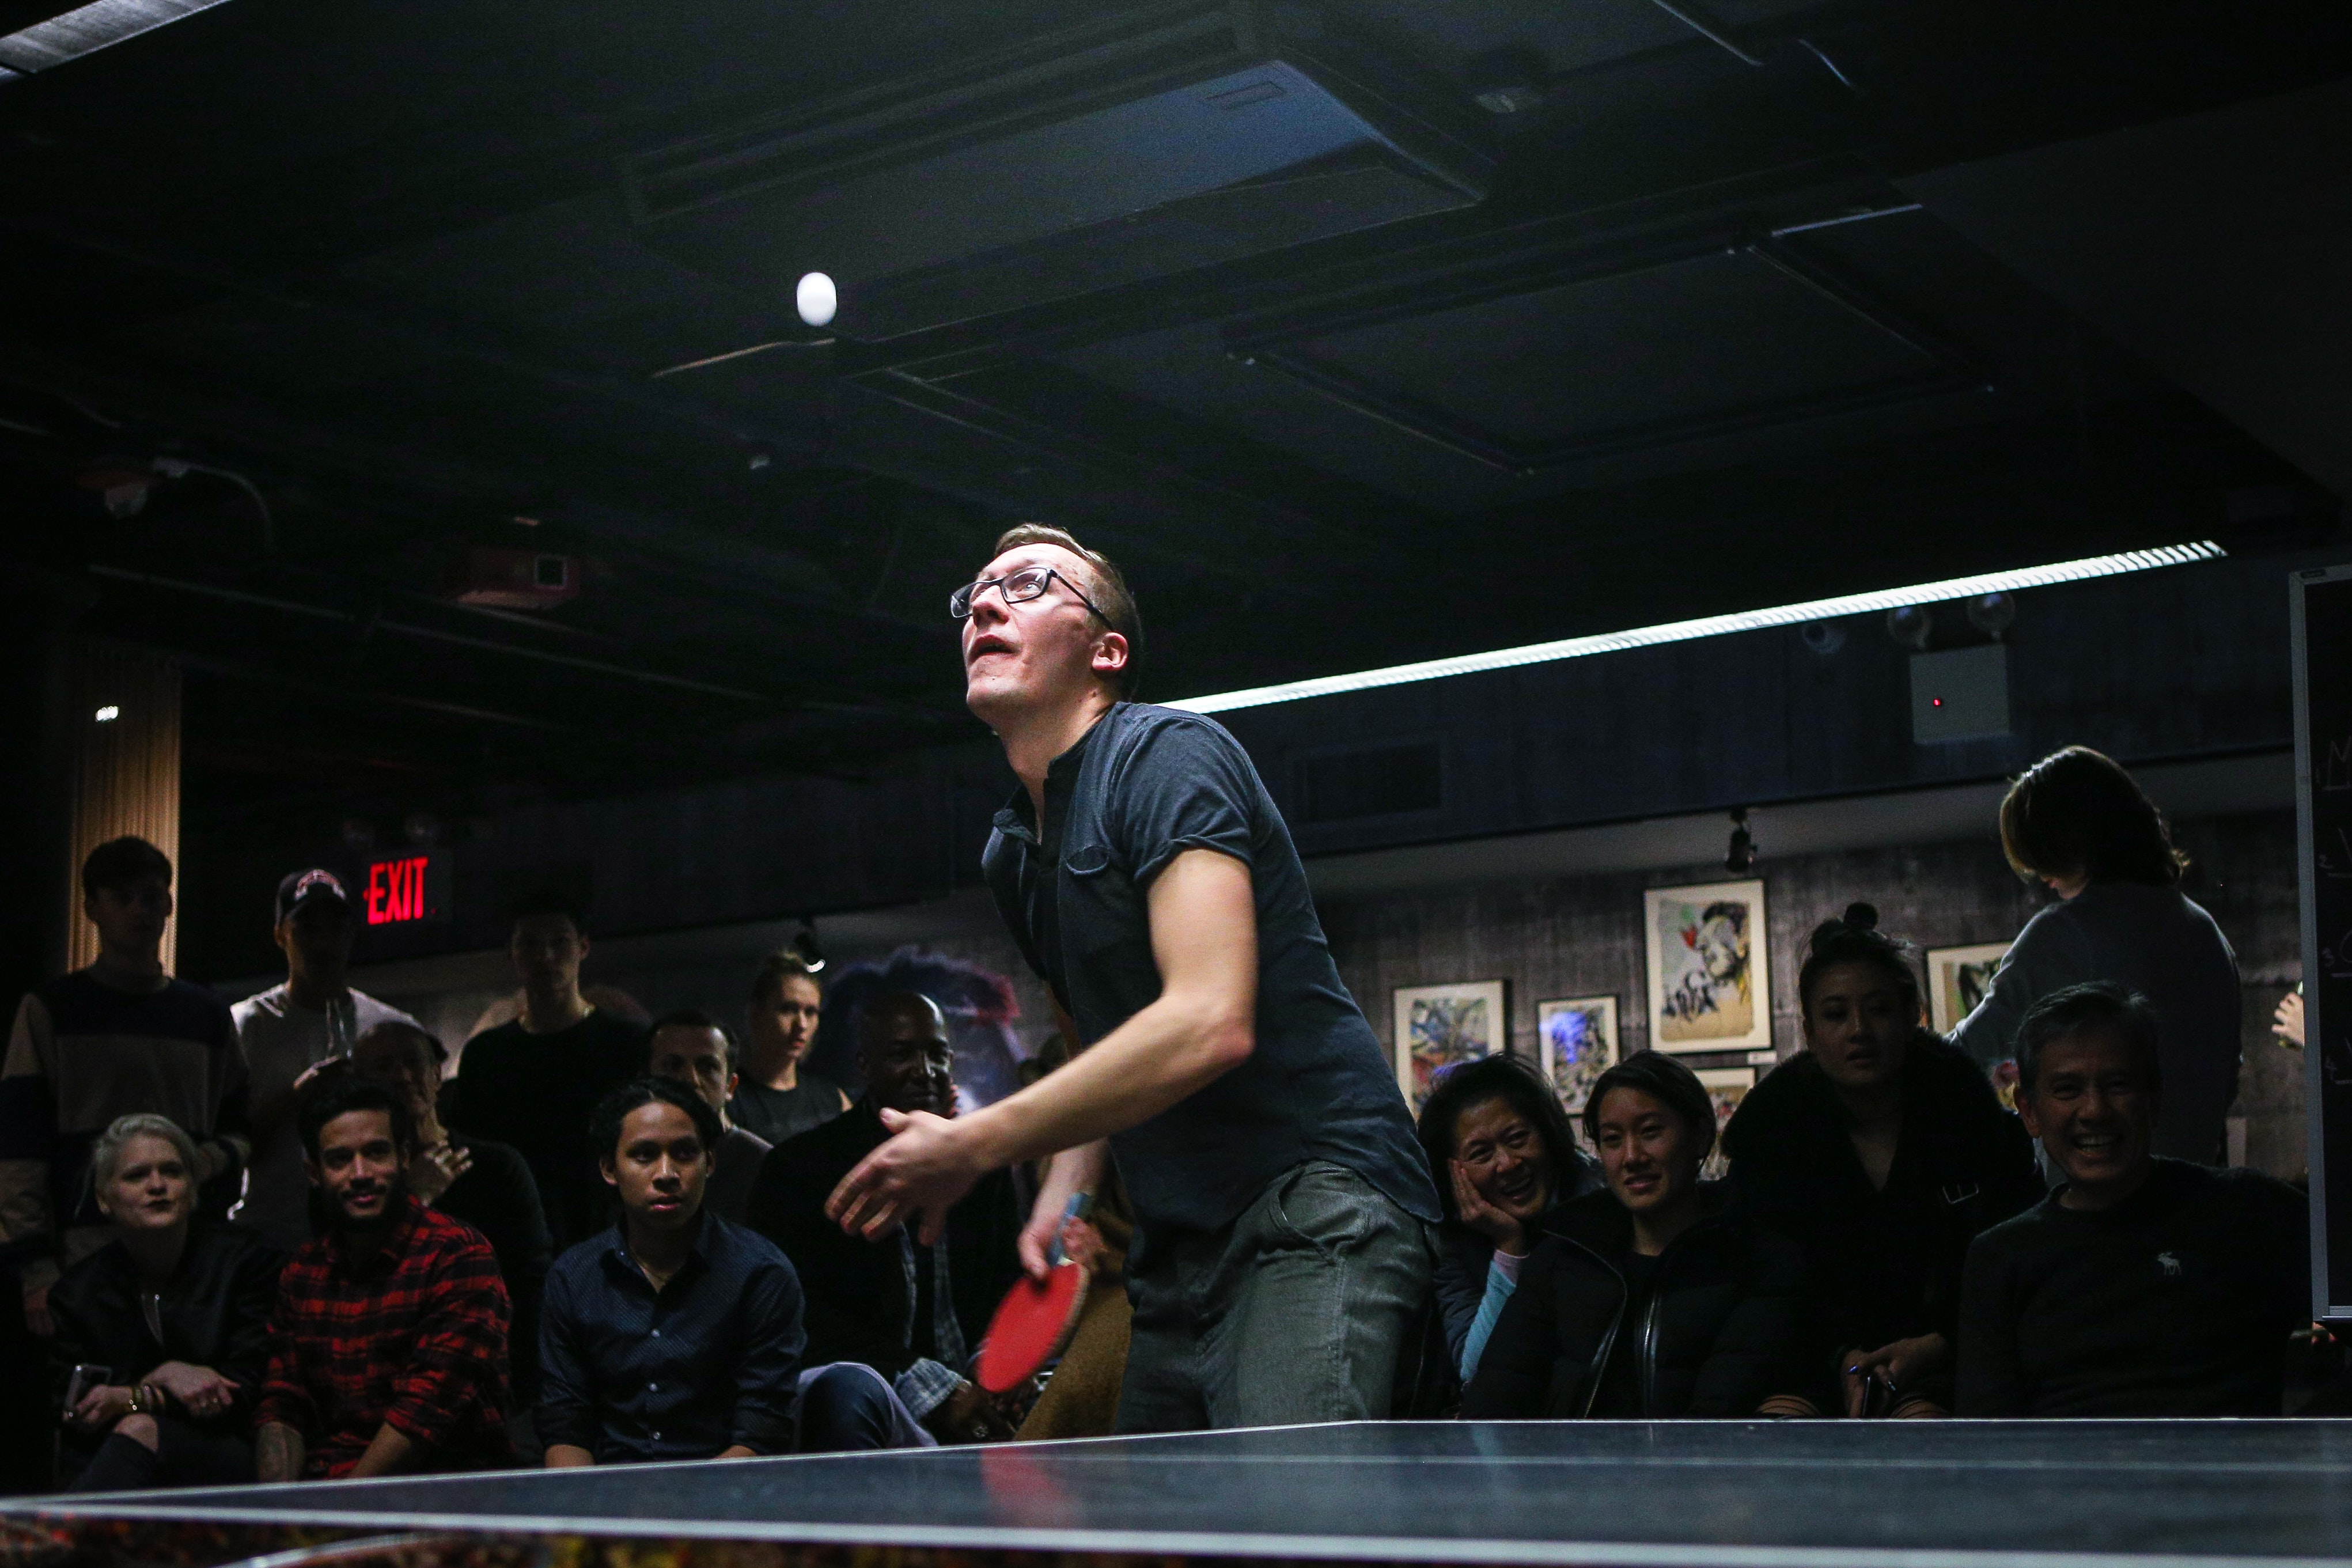 man about to paddle ping pong ball surrounded by group of people